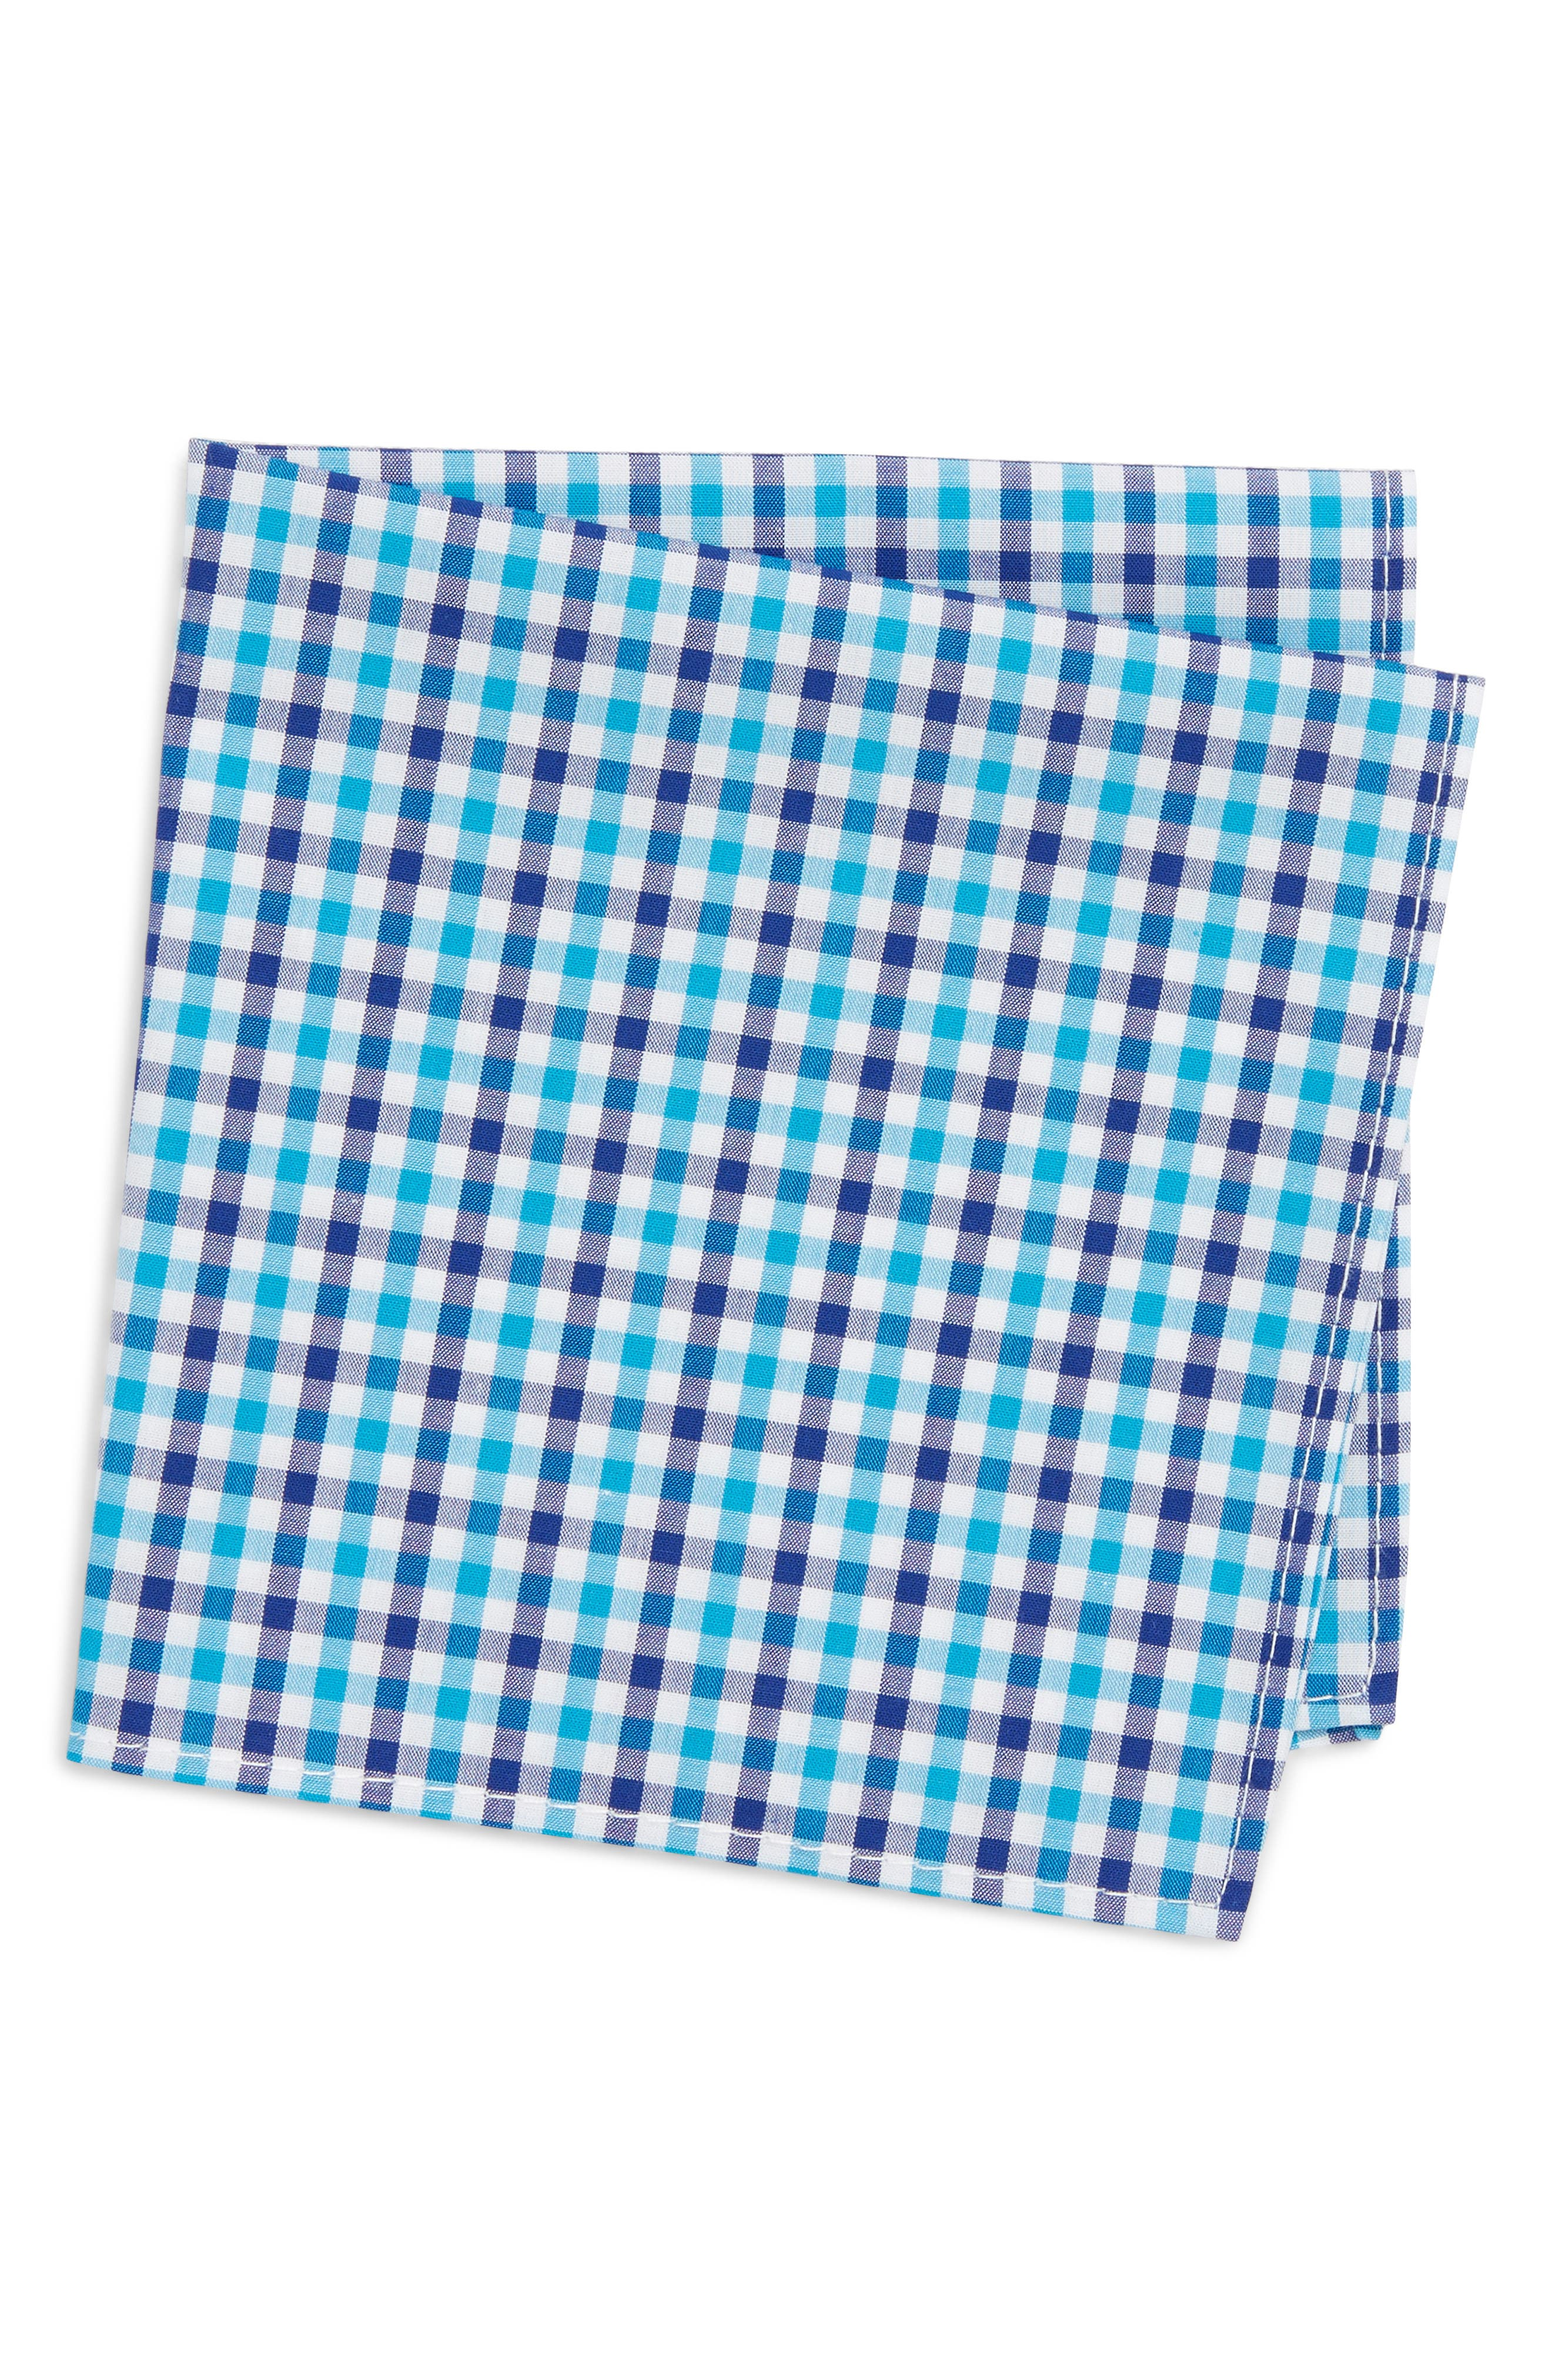 Gingham Pocket Square,                             Main thumbnail 1, color,                             Turquoise